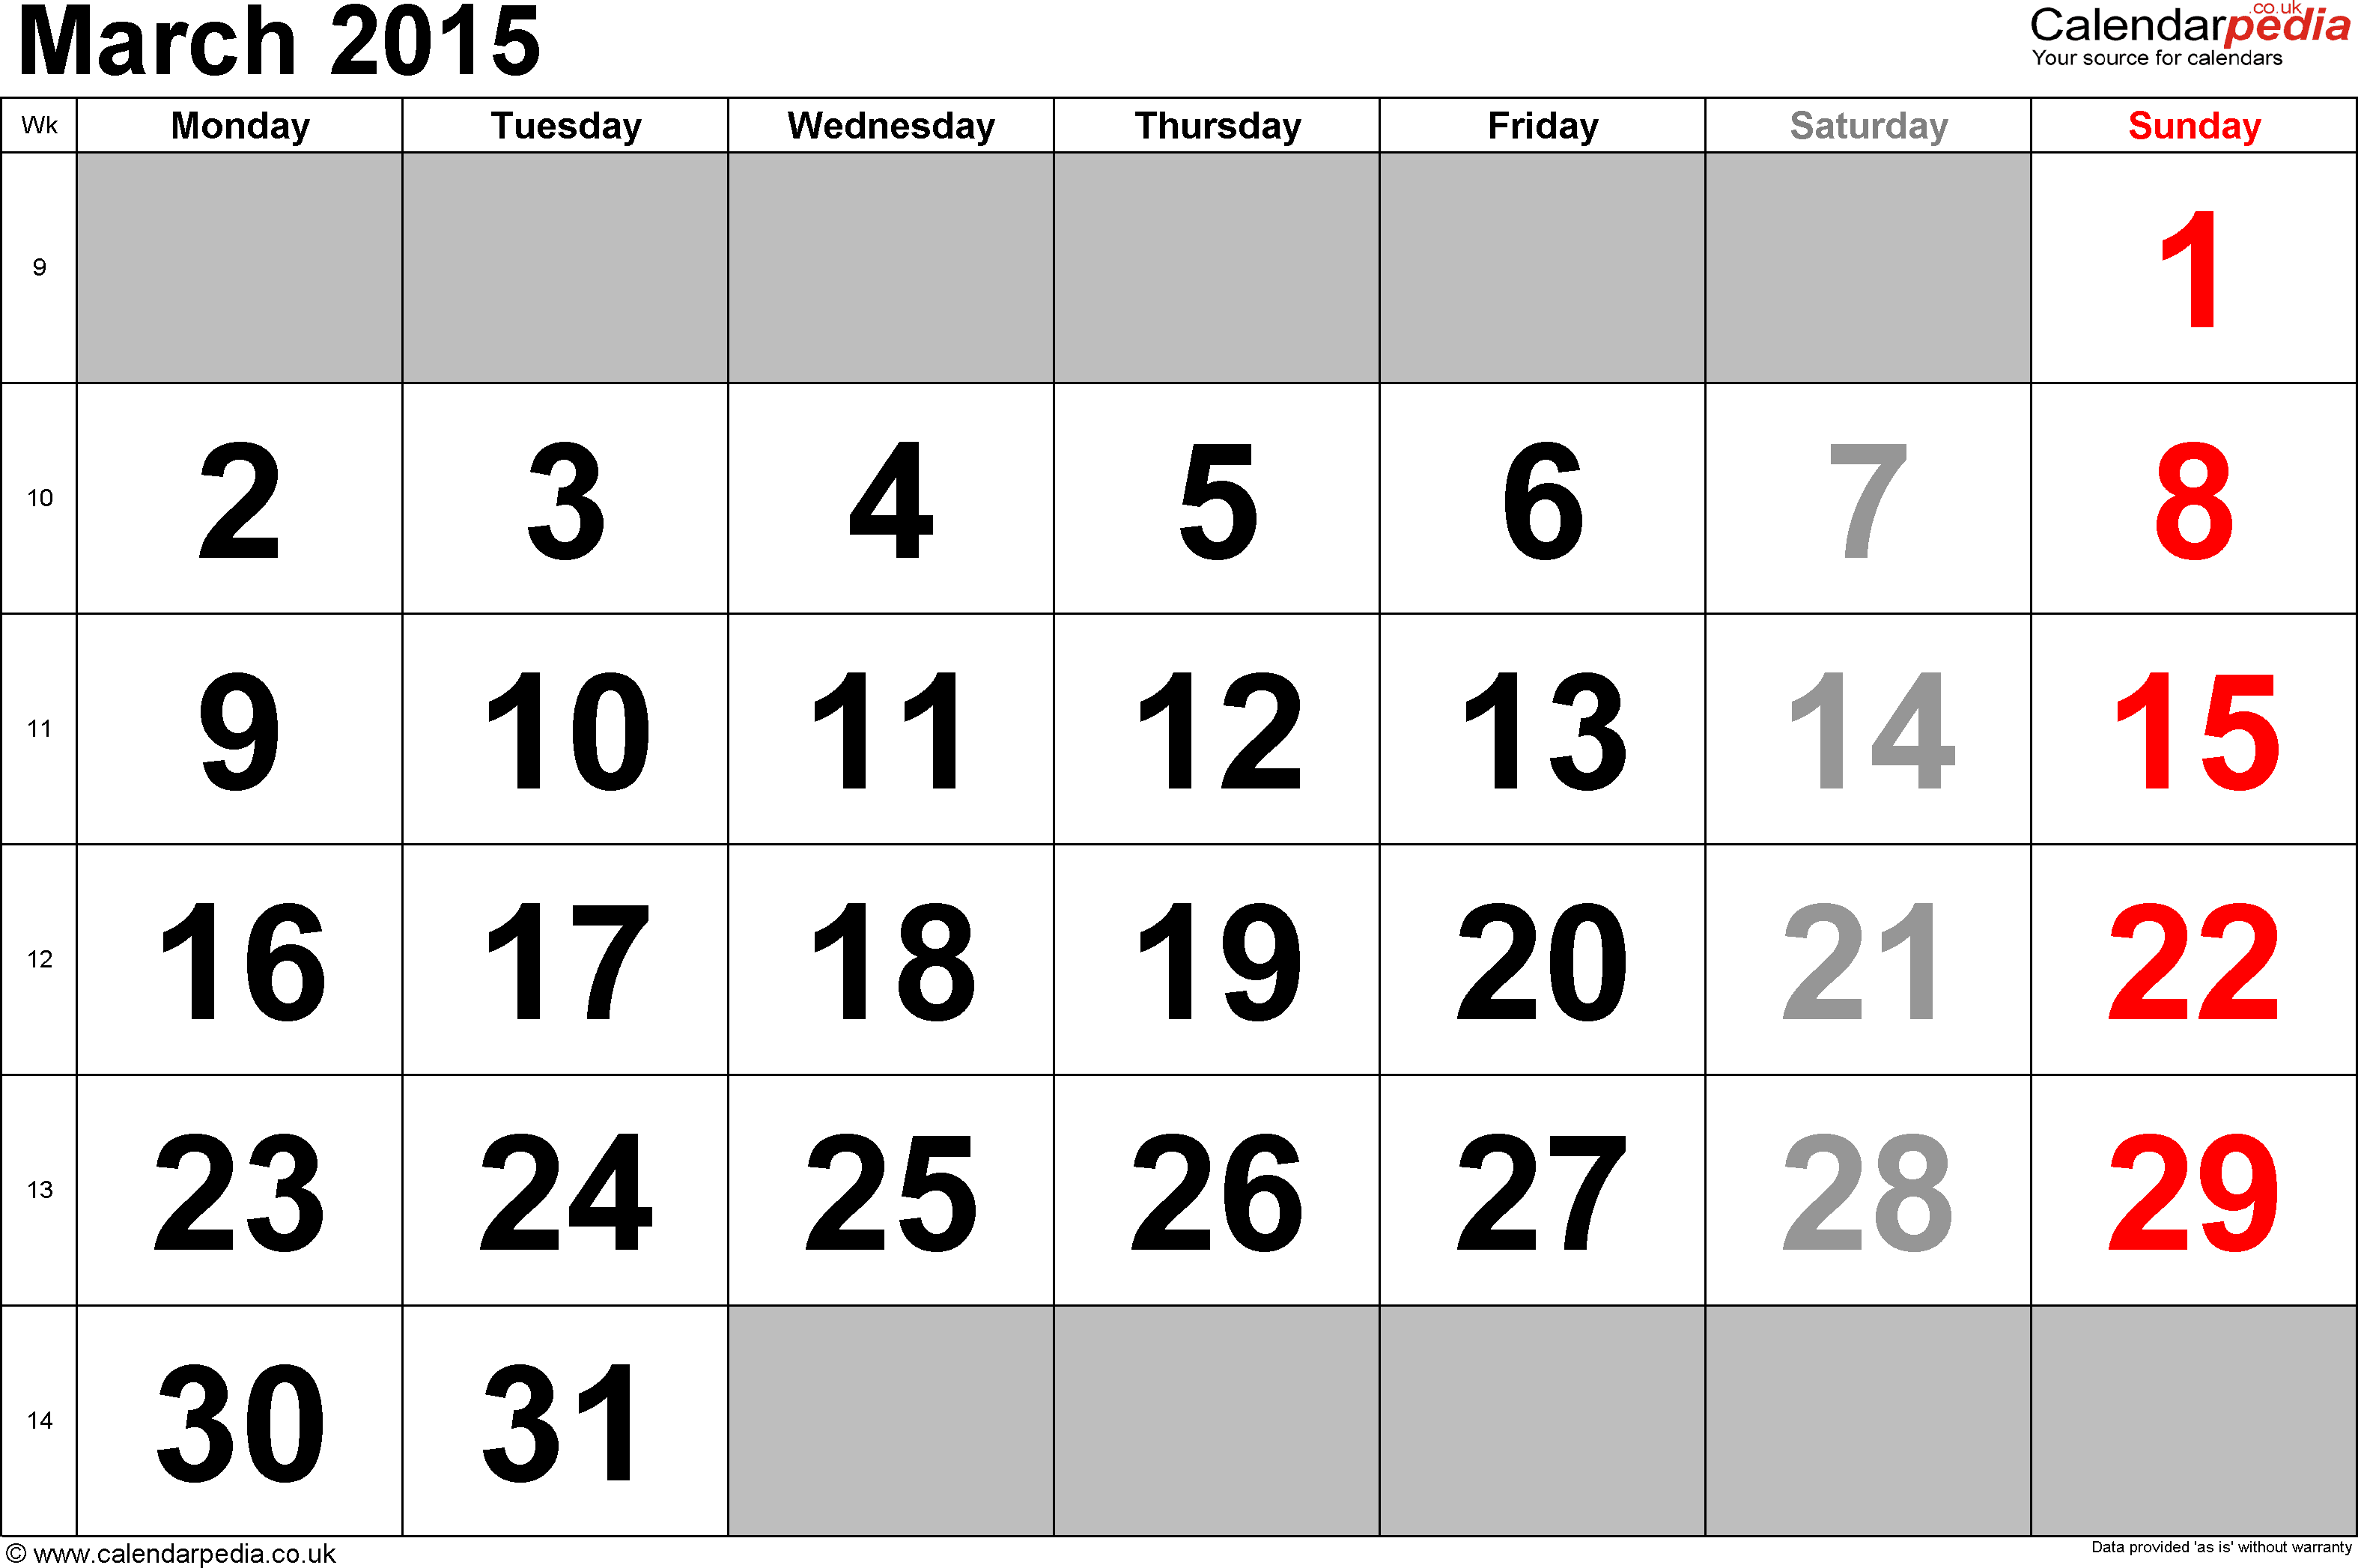 Calendar March 2015, landscape orientation, large numerals, 1 page, with UK bank holidays and week numbers